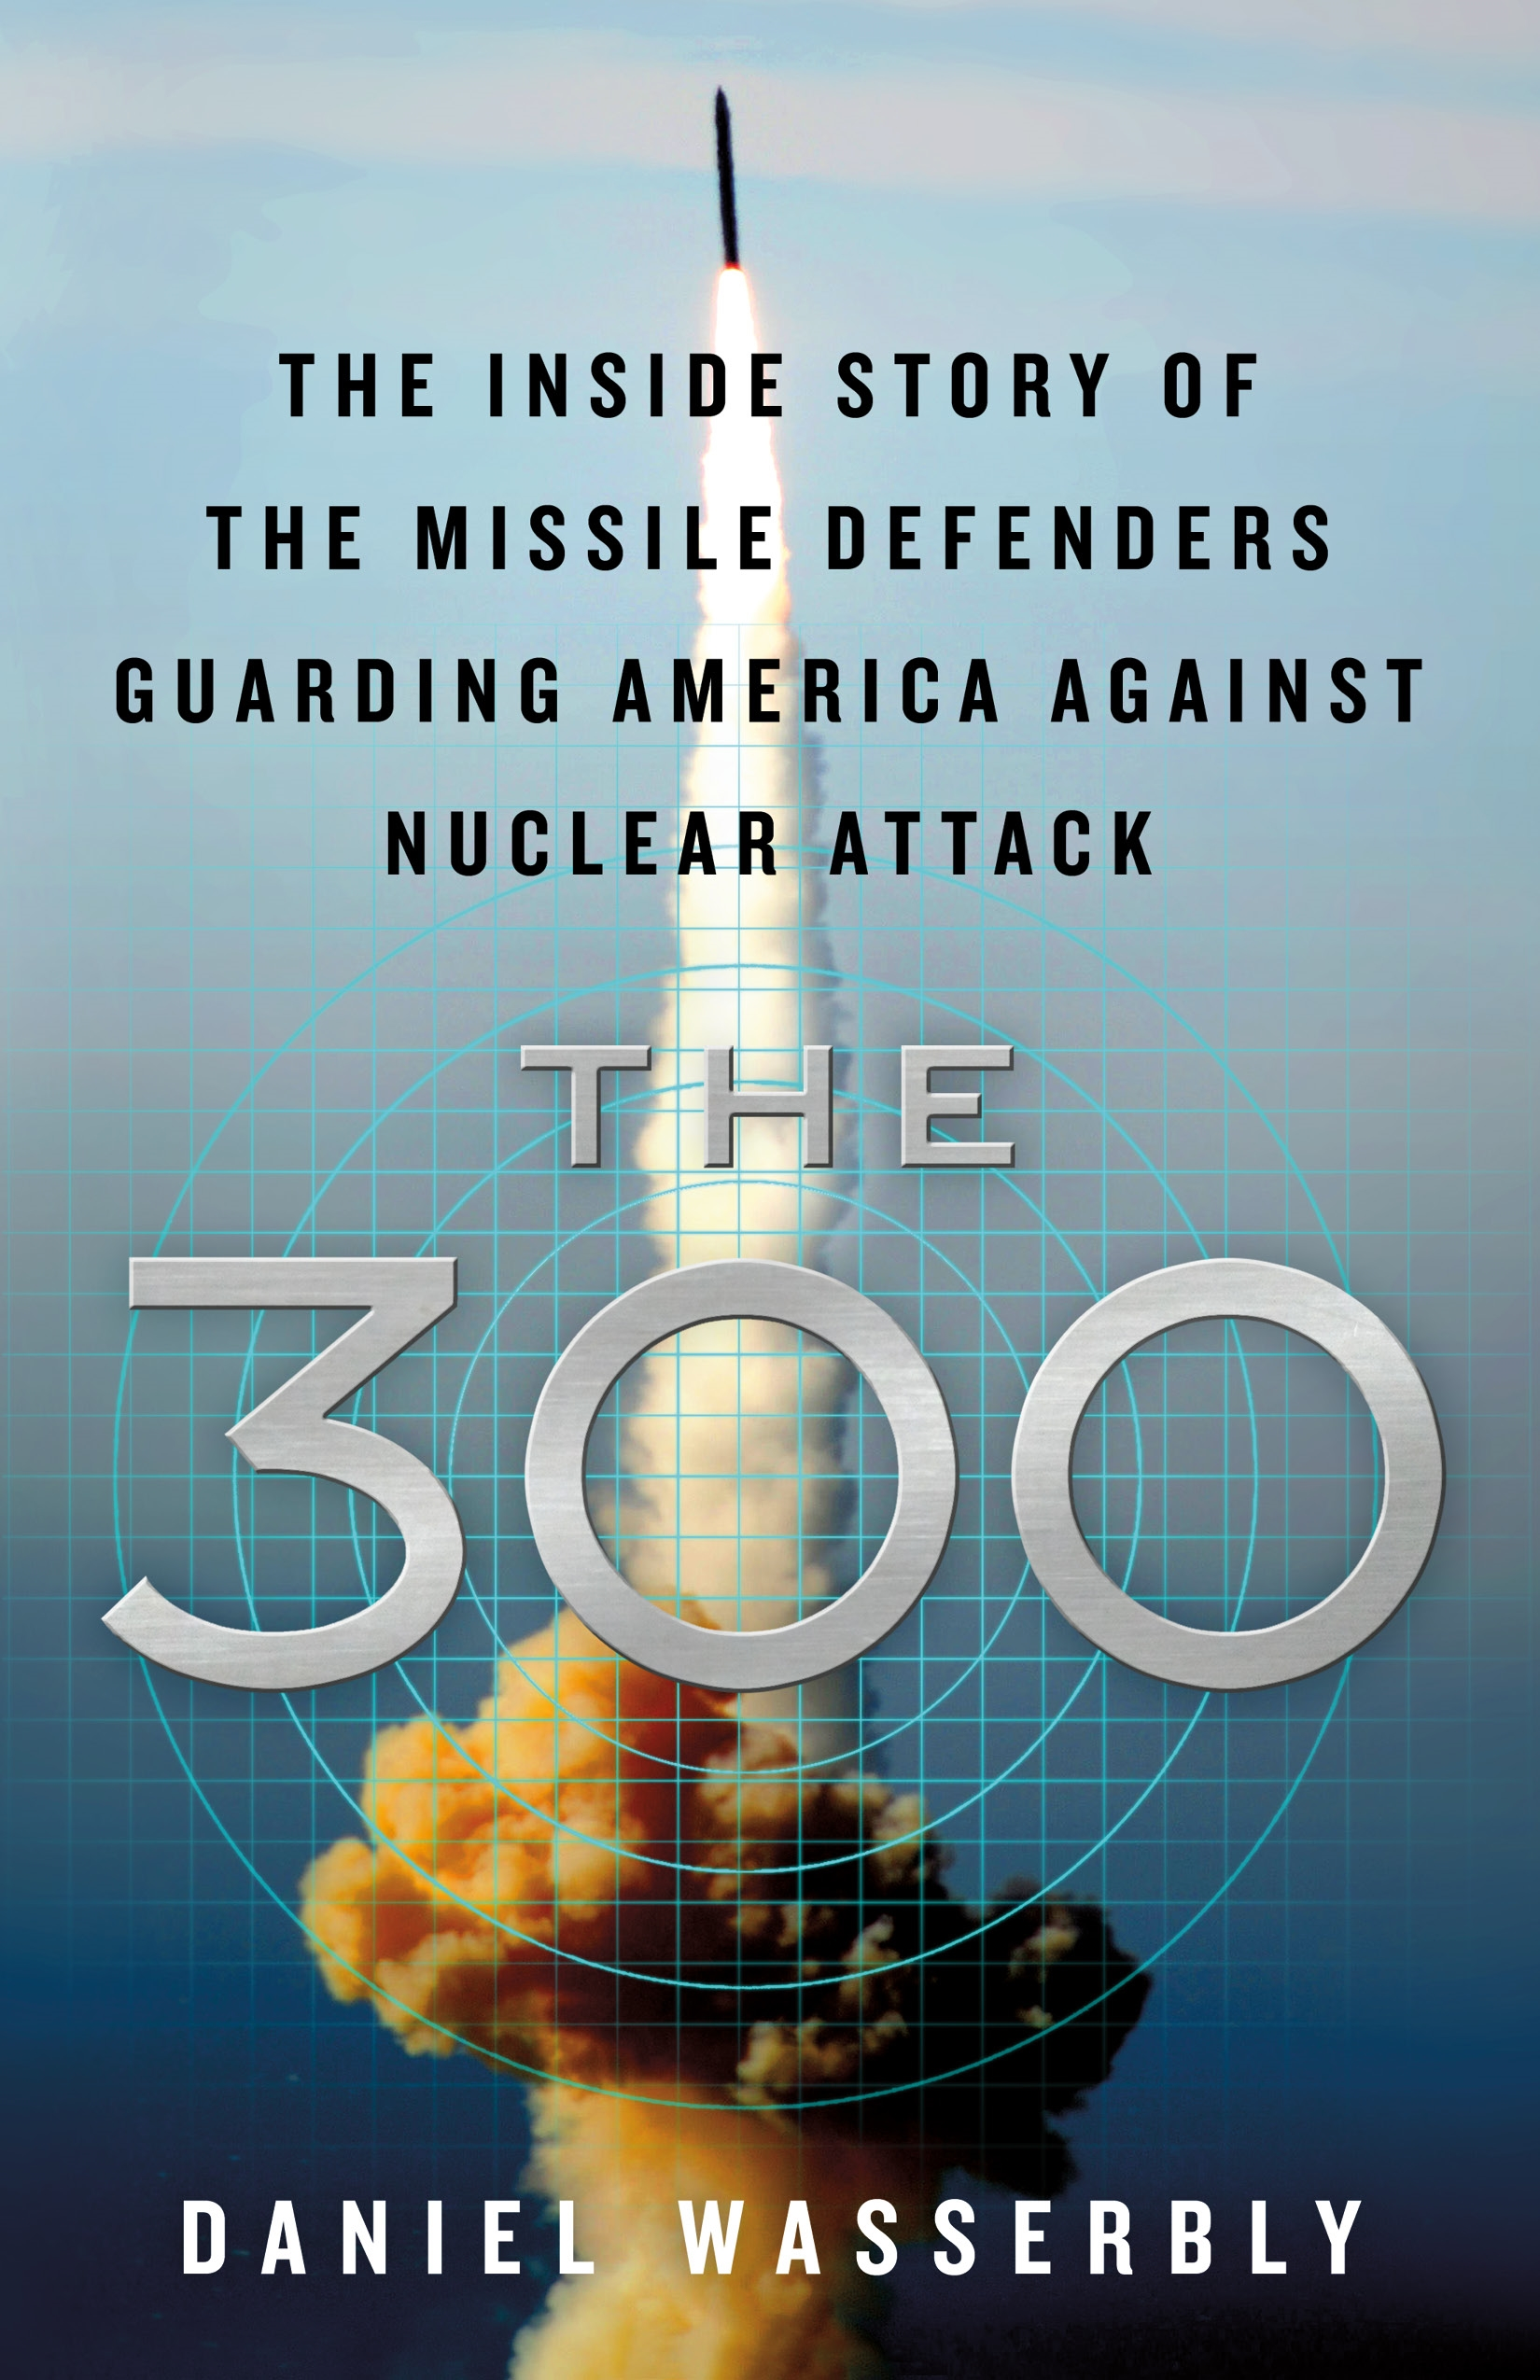 The 300 The Inside Story of the Missile Defenders Guarding America Against Nuclear Attack